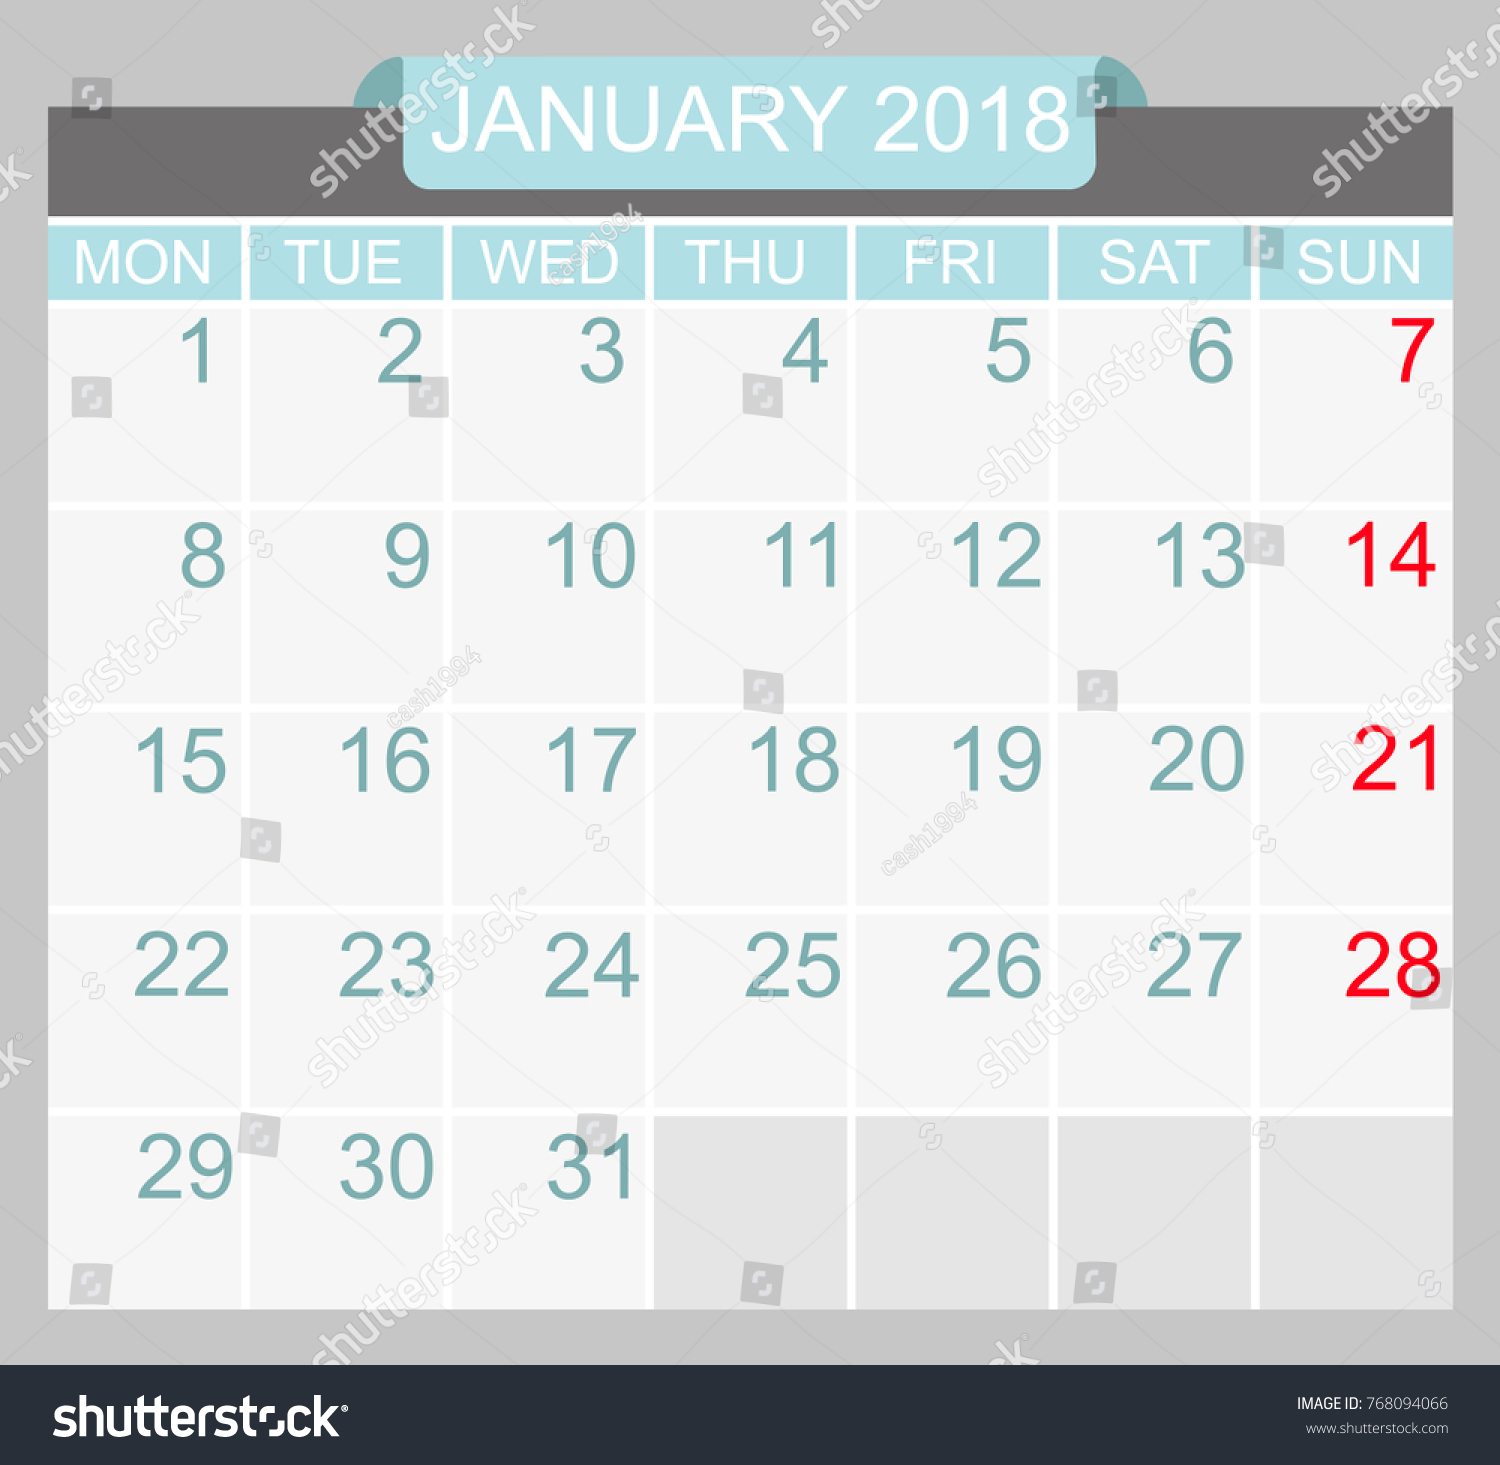 vector of january 2018 new year calendar in clean minimal table simple style holiday event